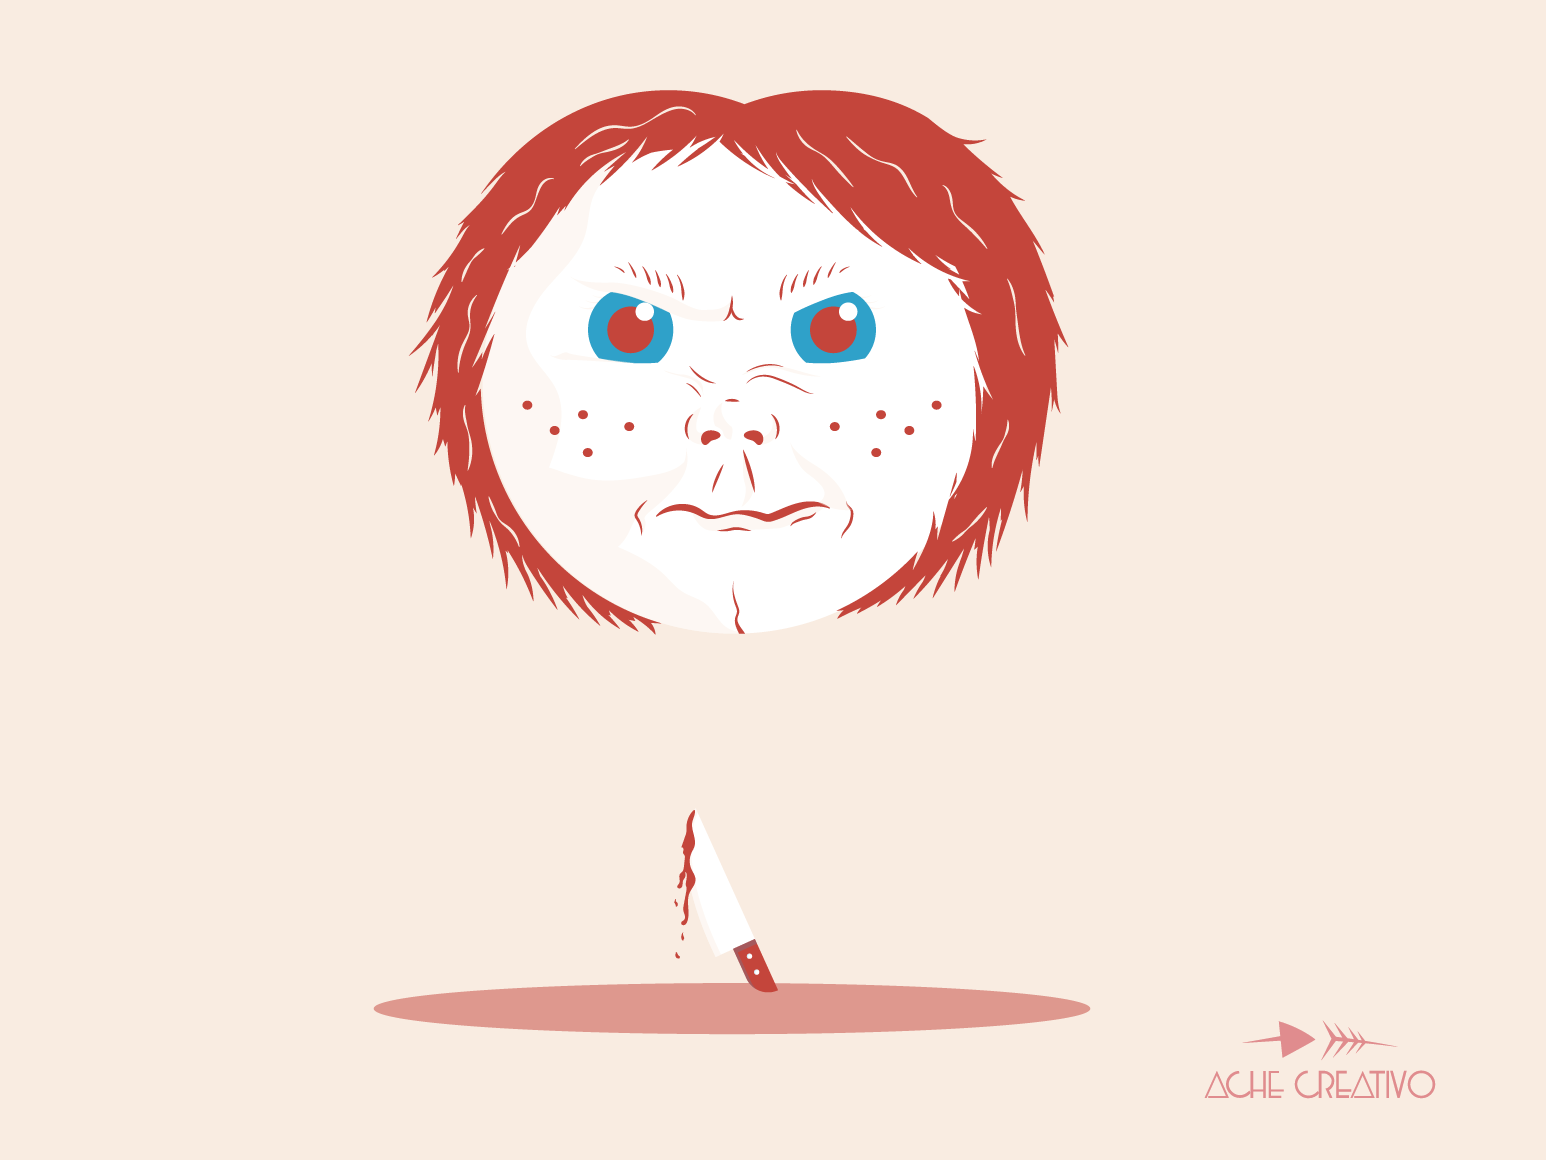 Chucky illustrator cc illustrator design chucky illustration dribbble vector horror horror movie